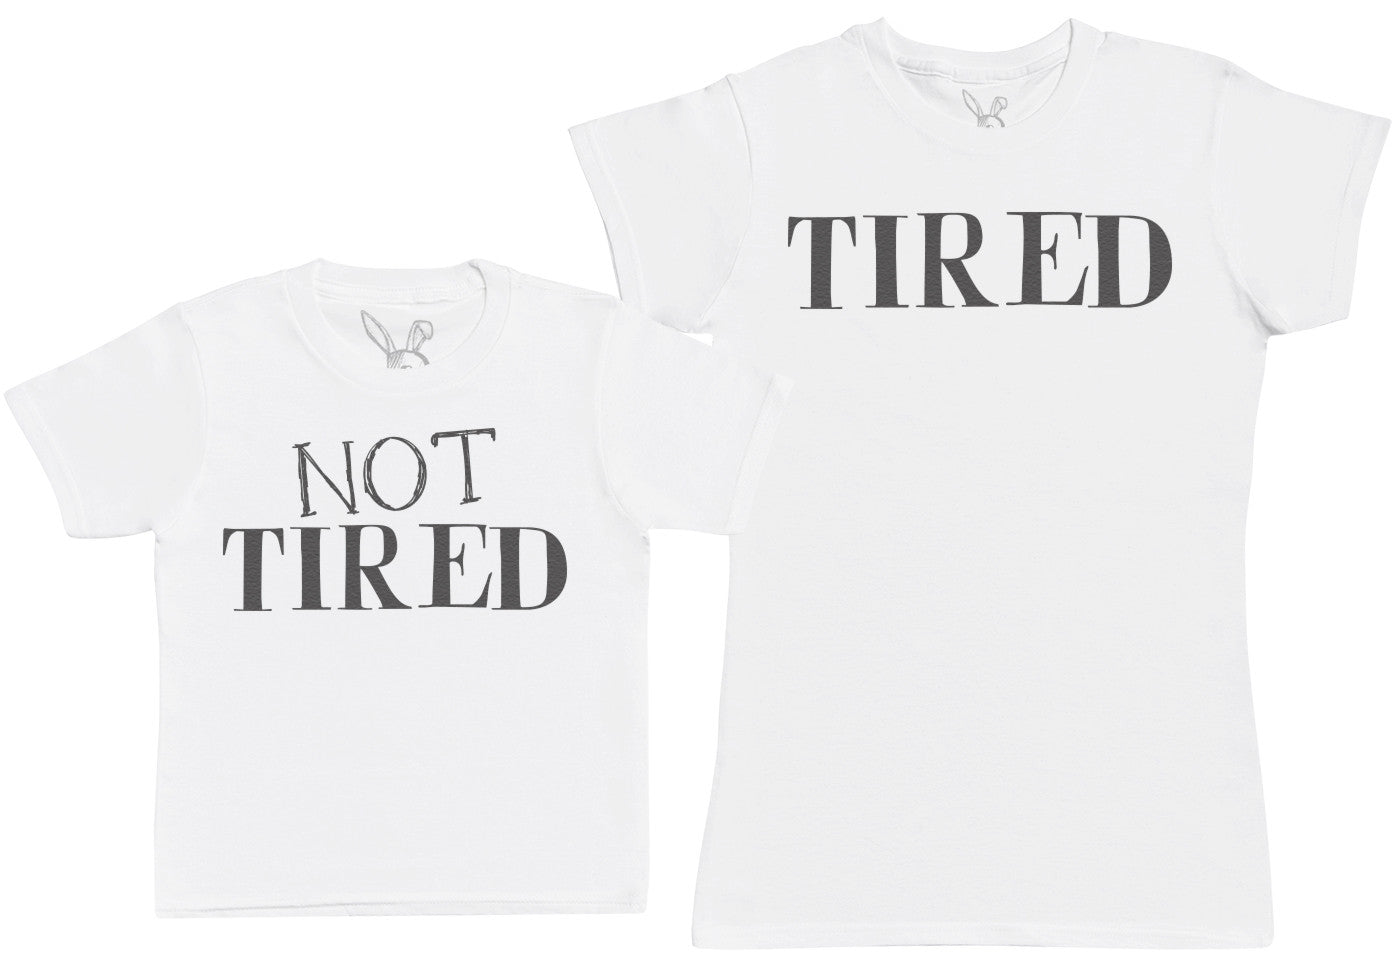 Not Tired & Tired - Kid's Gift Set with Kid's T-Shirt & Mother's T-Shirt